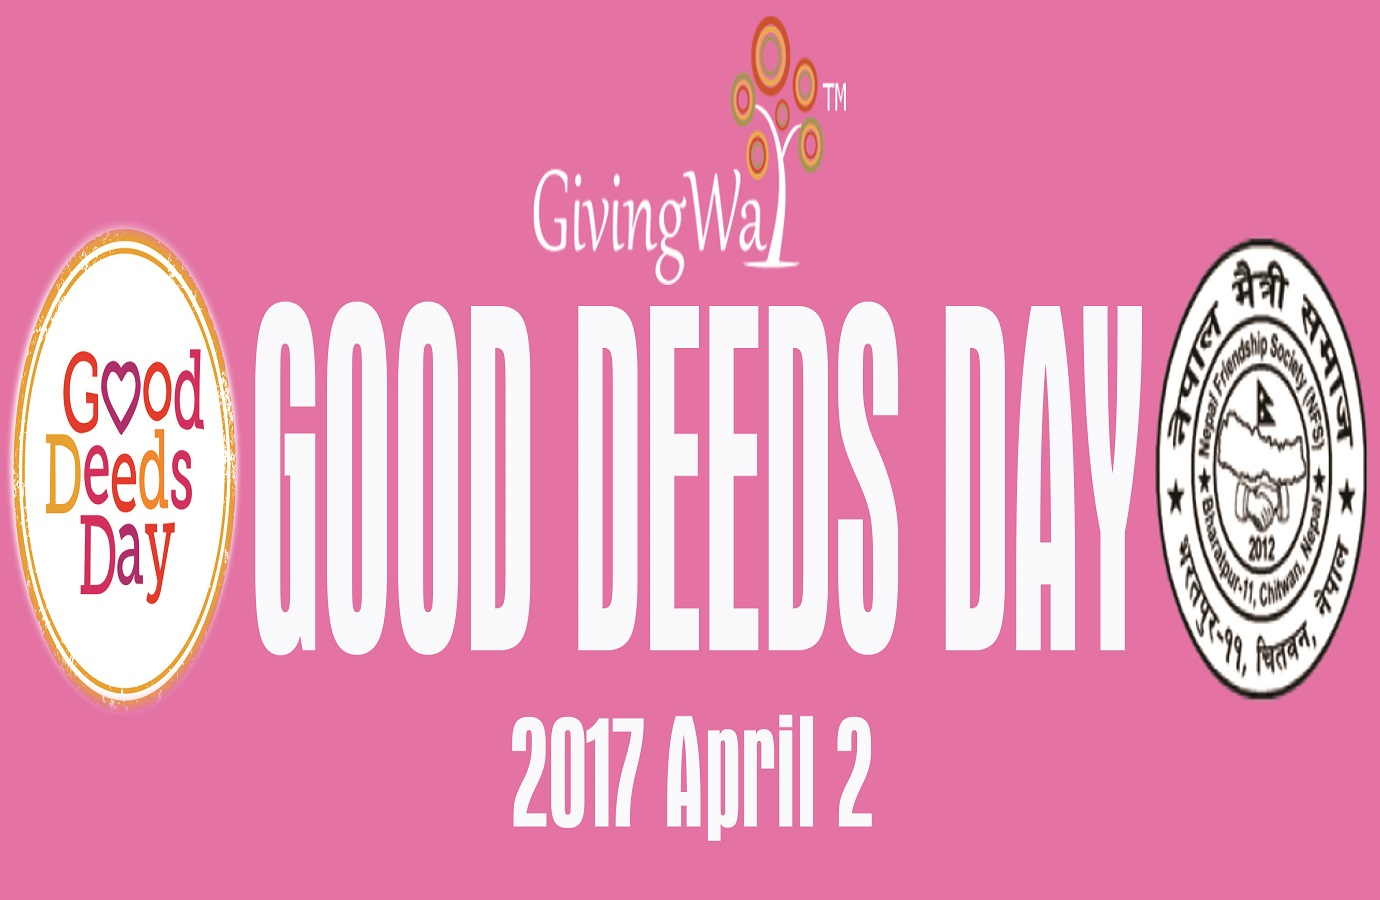 Good Deeds Day 2017